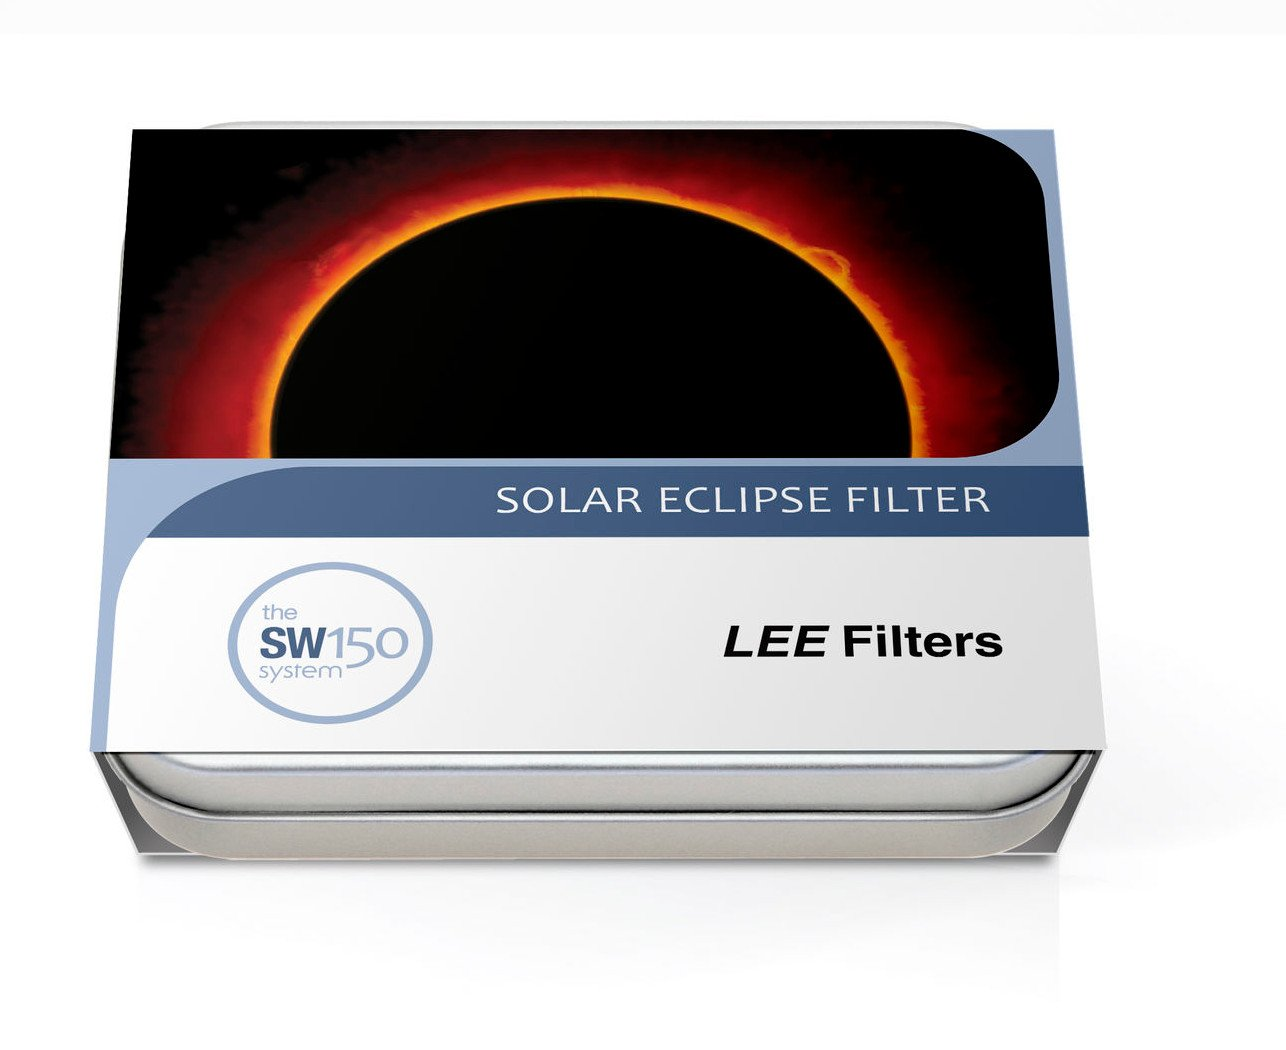 Lee Filters 150x150mm Solar Stopper Neutral Density 6.0 Filter for SW150-Series Filter Holder, 20 Stop by Lee Filters